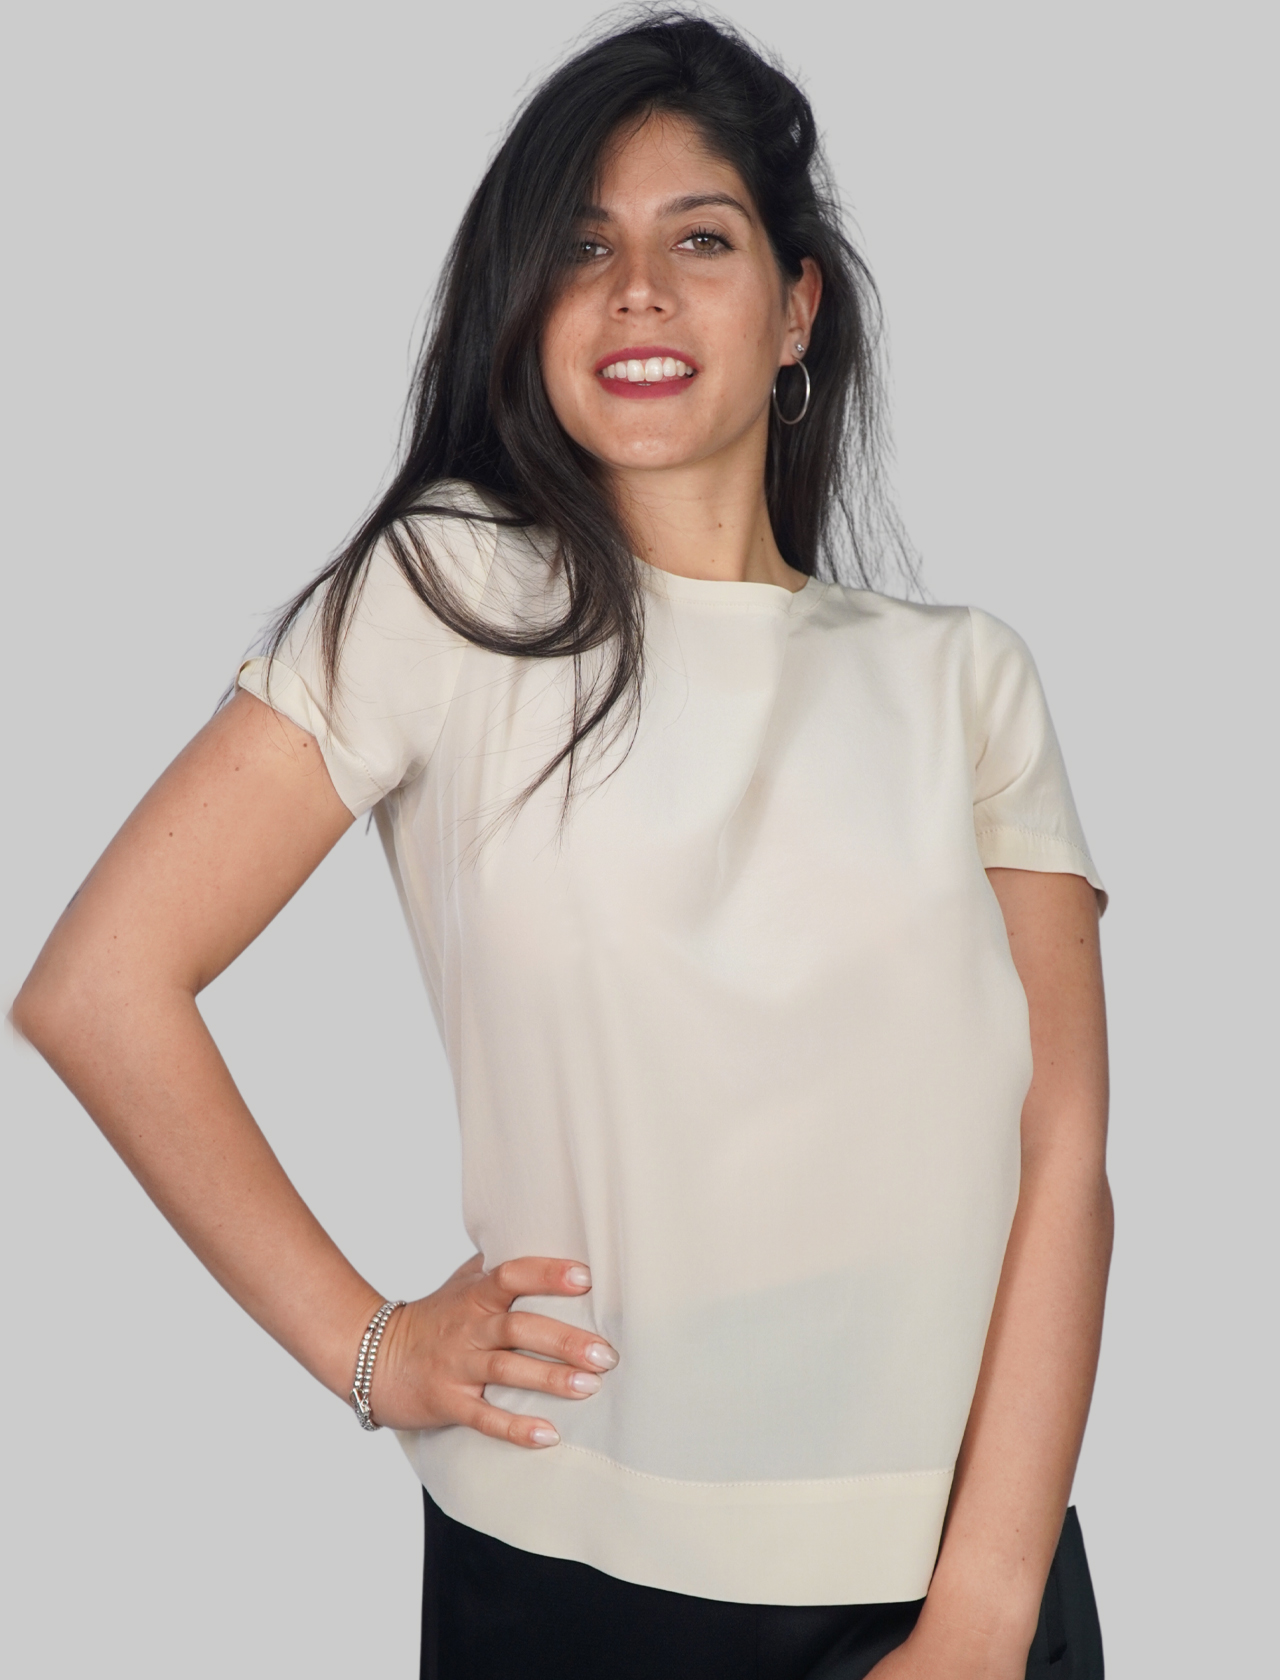 Women's Clothing T-shirt Crepe de Chine Blouse in Pure Silk Half Sleeve Sand Maliparmi | Shirts and tops | JM42123004411001